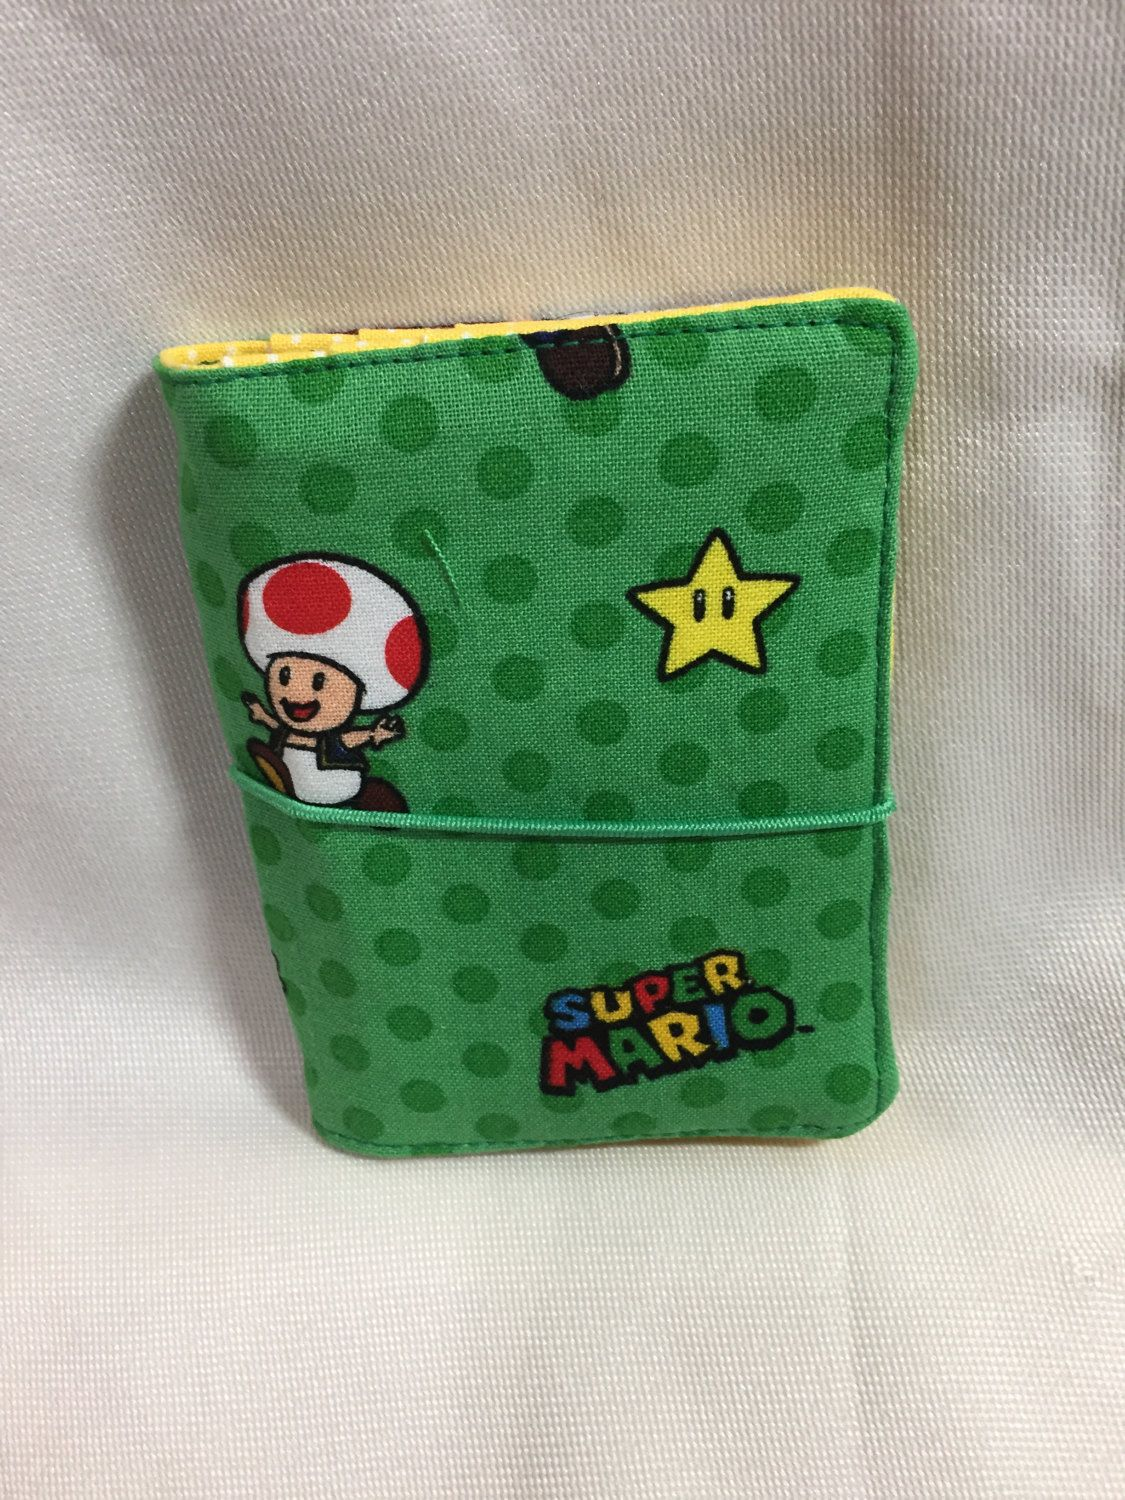 Super mario world business card holderwallet by mommymarycrafts on super mario world business card holderwallet reheart Images